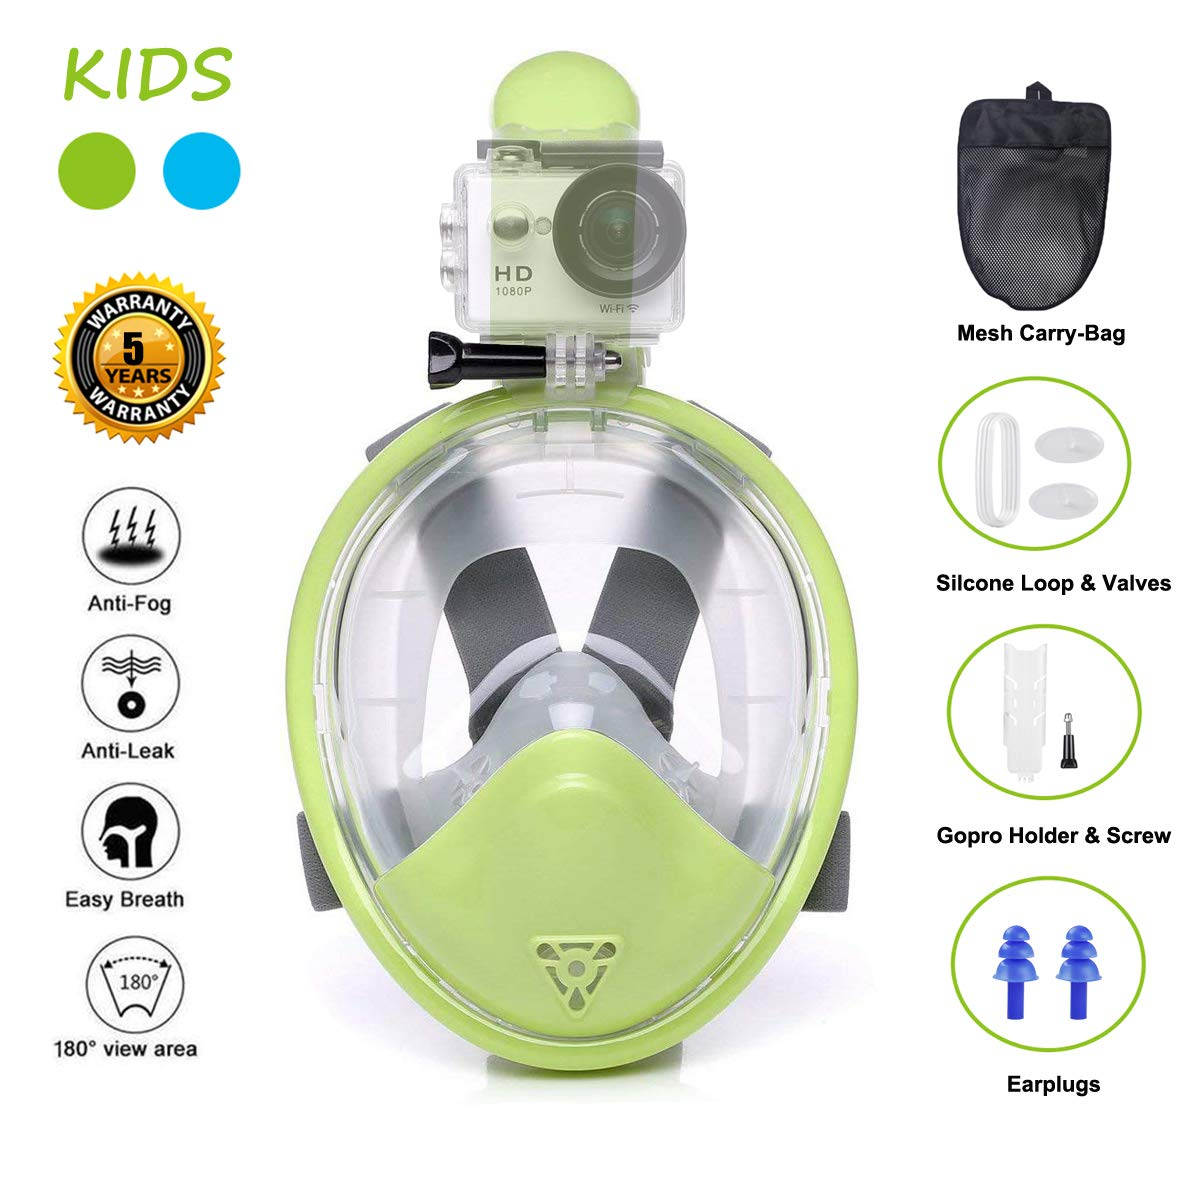 Ufanore Full Face Snorkel Mask, Snorkeling Mask for Kids with Detachable Camera Mount, Foldable 180° Panoramic View, Free Breathing, Anti-Fog and Anti-Leak by Ufanore